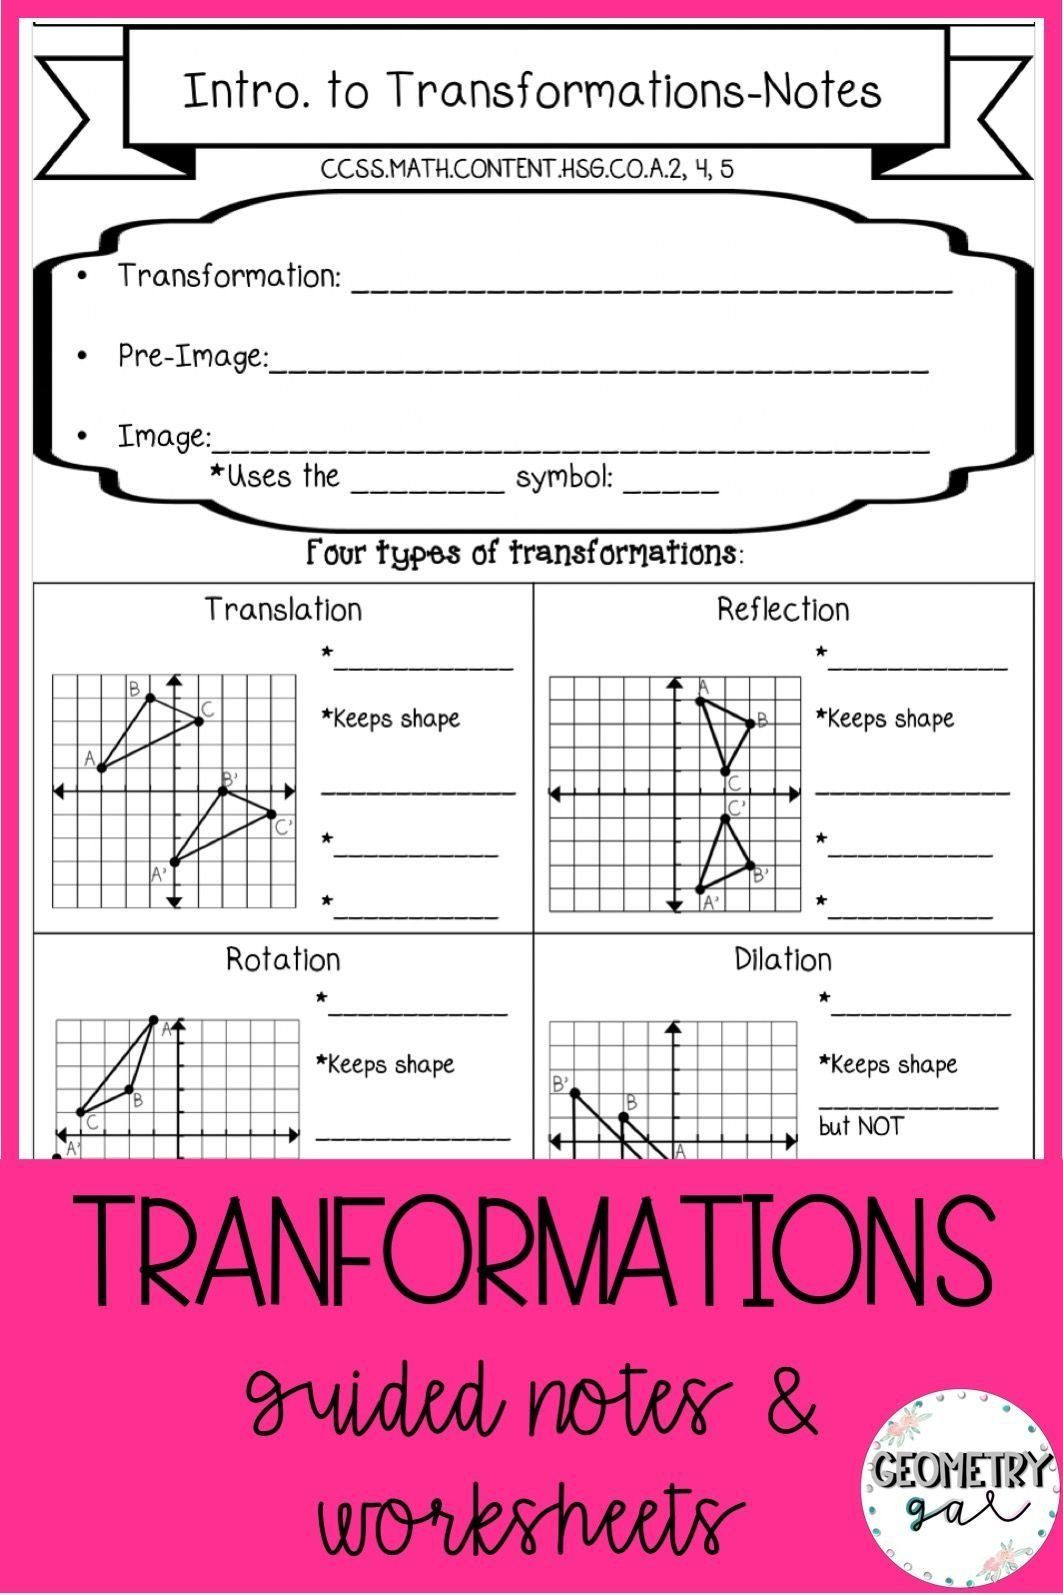 Geometry Transformation Composition Worksheet Answers Transformations Guided Notes And Worksheets With Im In 2020 Guided Notes Geometry Worksheets Geometry High School